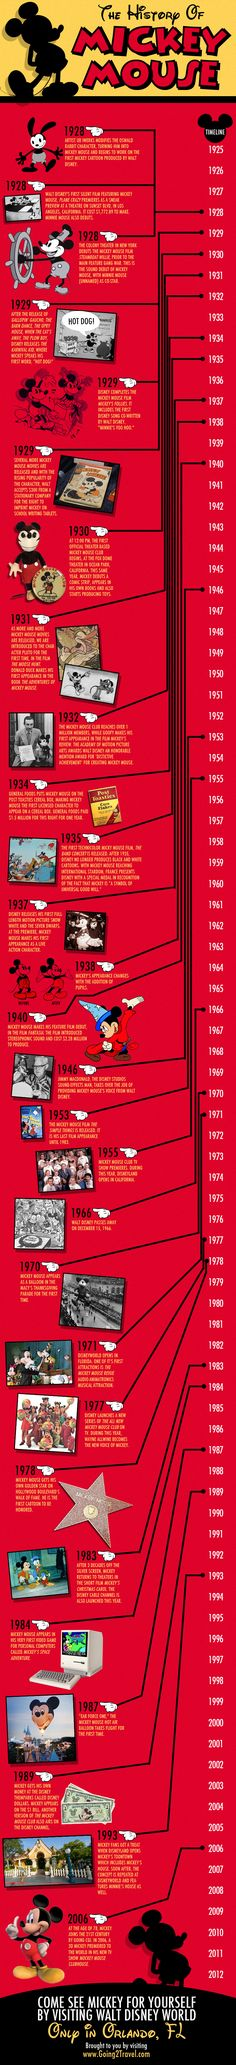 The History of Mickey Mouse infographic